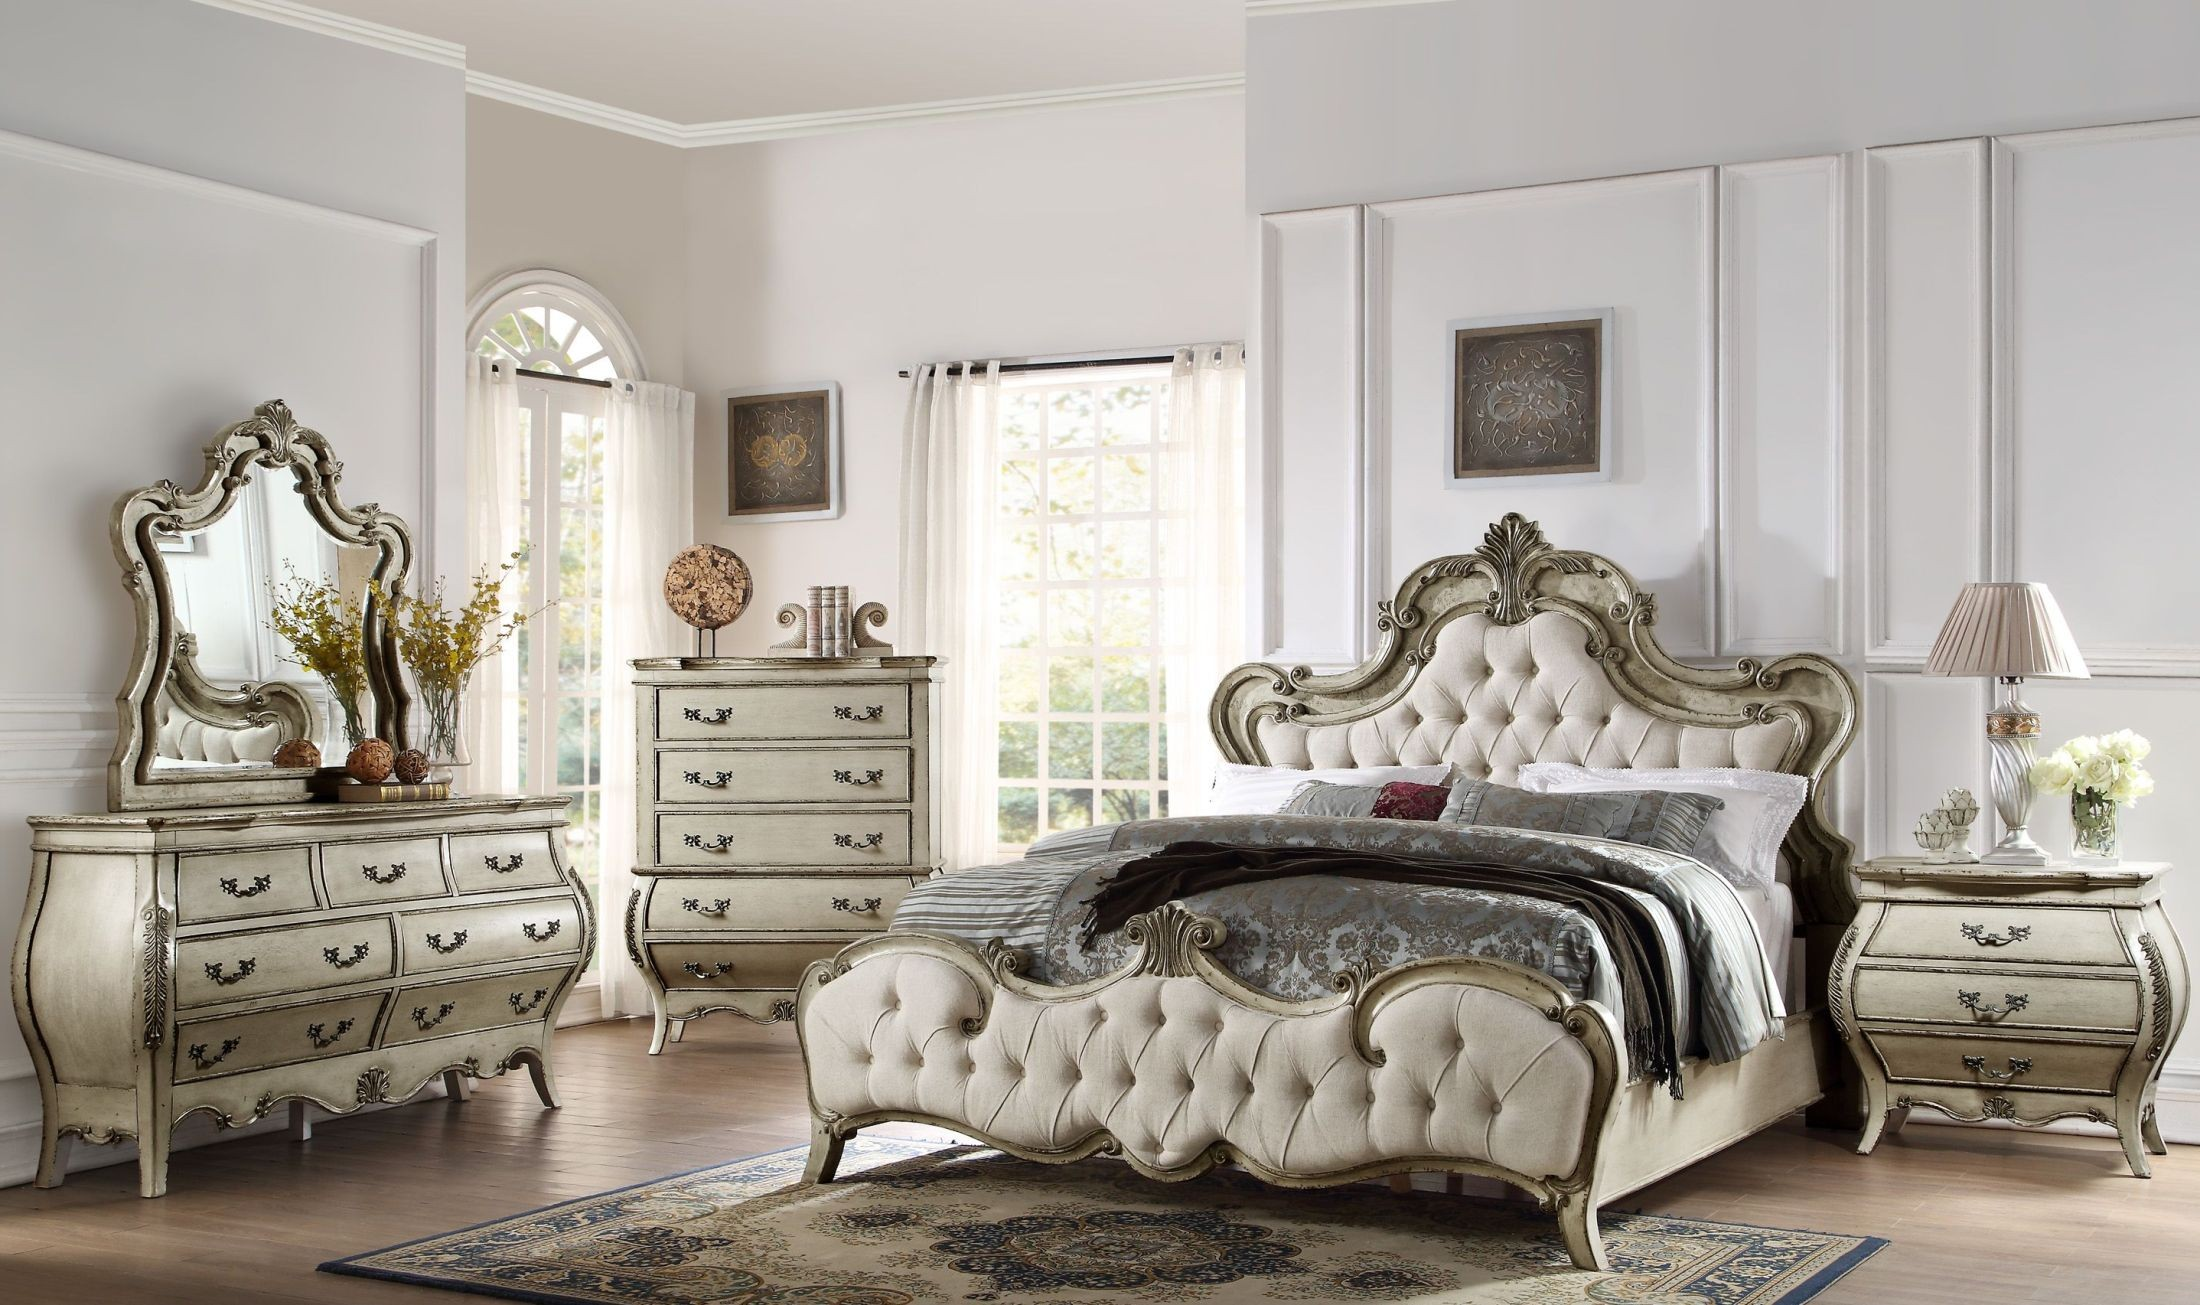 elsmere antique grey upholstered bedroom set from homelegance coleman furniture. Black Bedroom Furniture Sets. Home Design Ideas